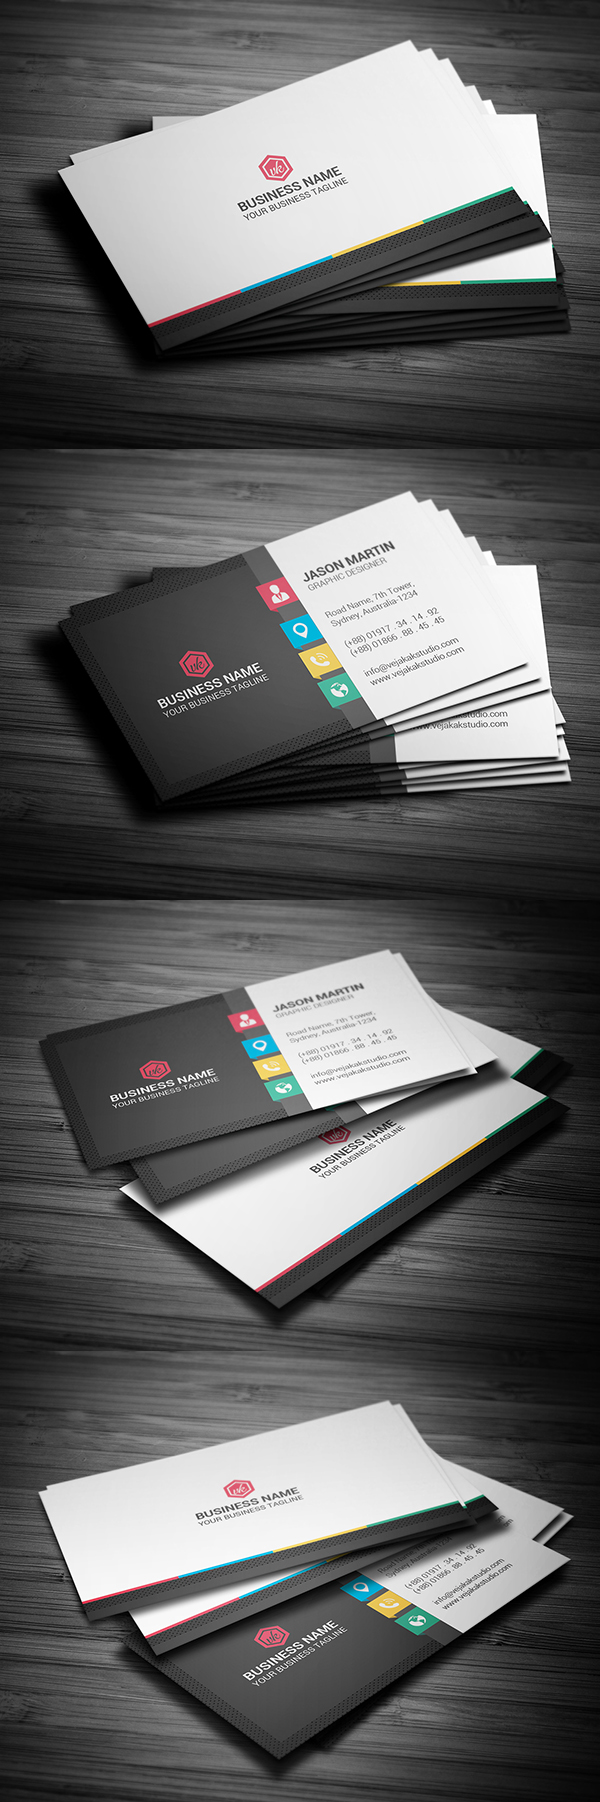 24 Business Card Design